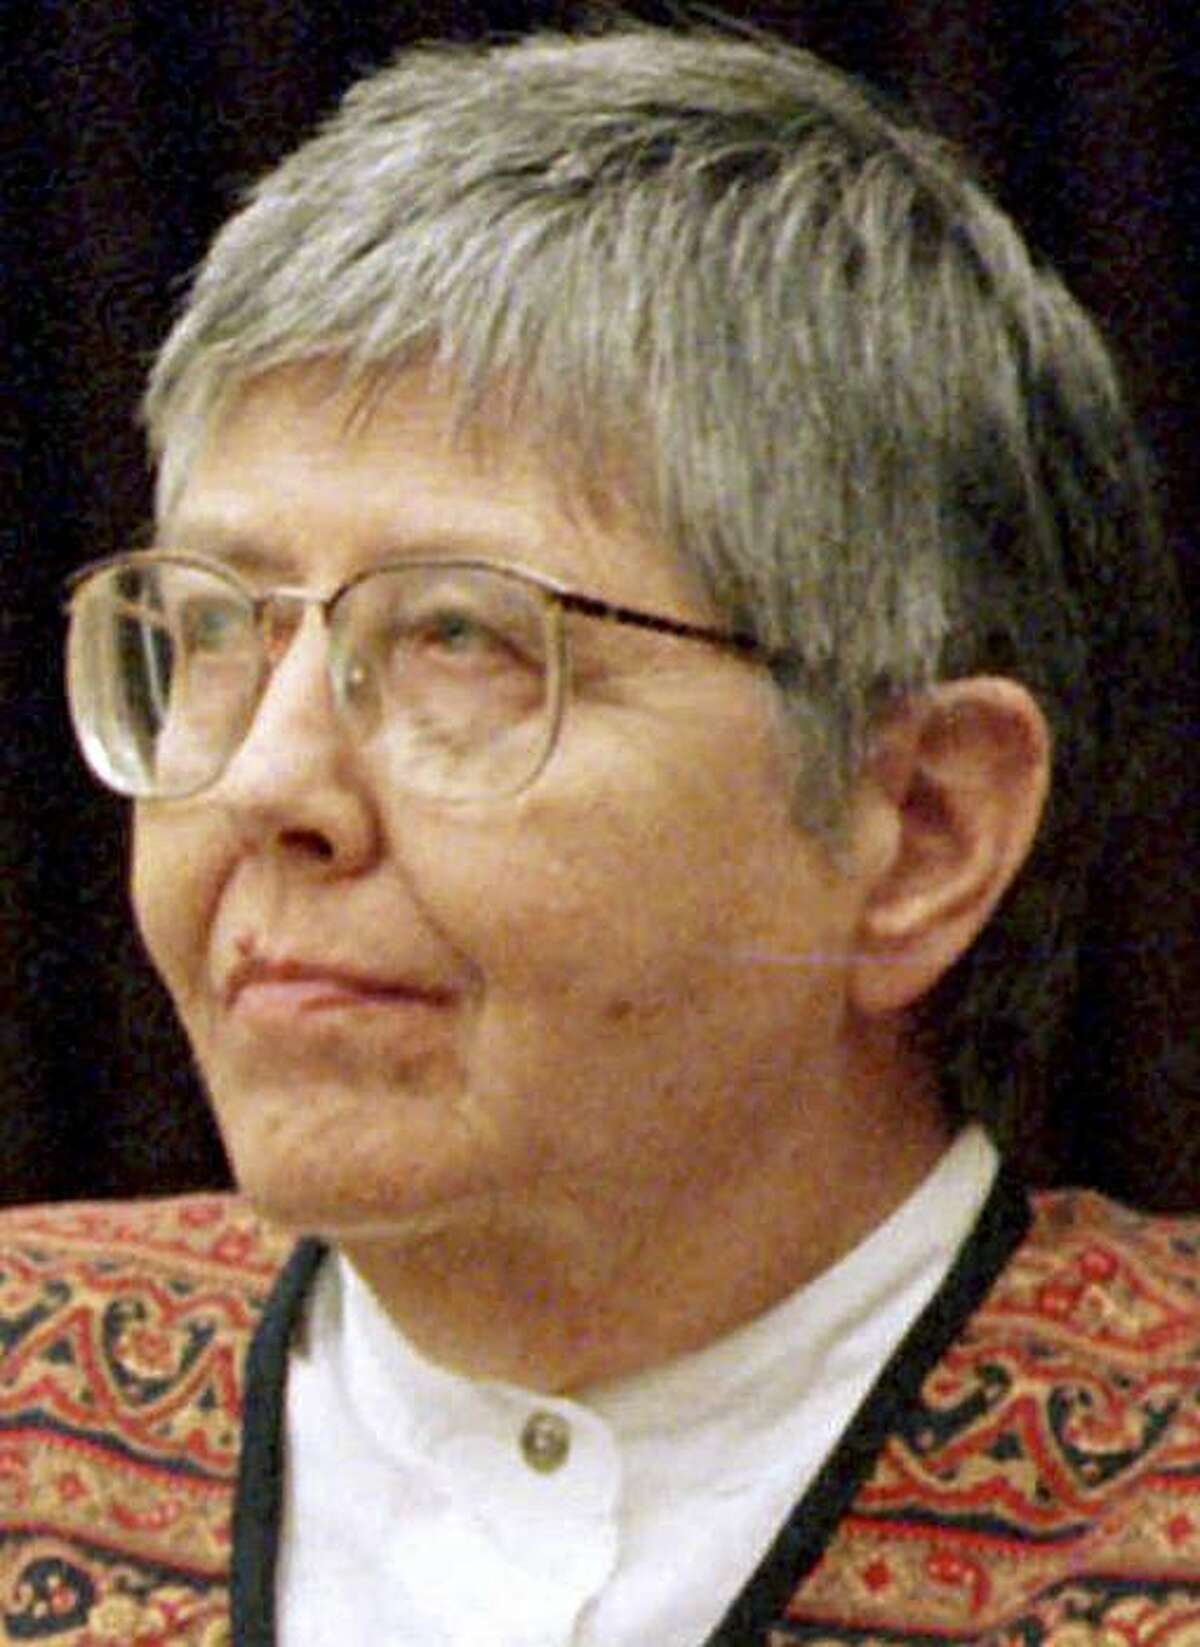 FILE - In this May 24, 1999 file photo, feminist theologian Mary Daly sits in Middlesex Superior Court in Cambridge, Mass. Daly, who retired from a professorship at Boston College rather than allow men to take her classes, died Wednesday, Jan. 6, 2010. She was 81.